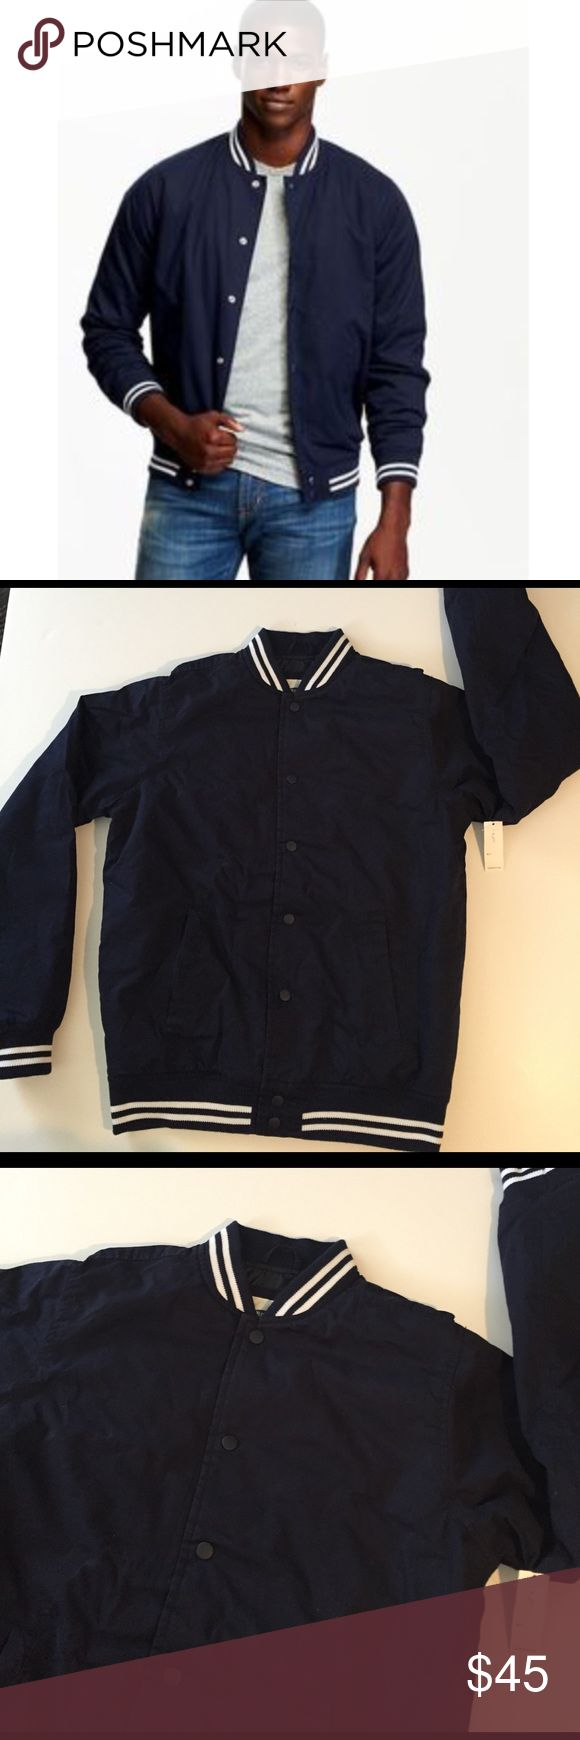 "Men's varsity jacket Super cute and could fit a ladies size m/lg. Measures approximately 20""armpit to armpit and a 27"" long. 100% shell with polyester lining. Navy blue with white stripe detail. Out of stock online. Old Navy Jackets & Coats Bomber & Varsity"